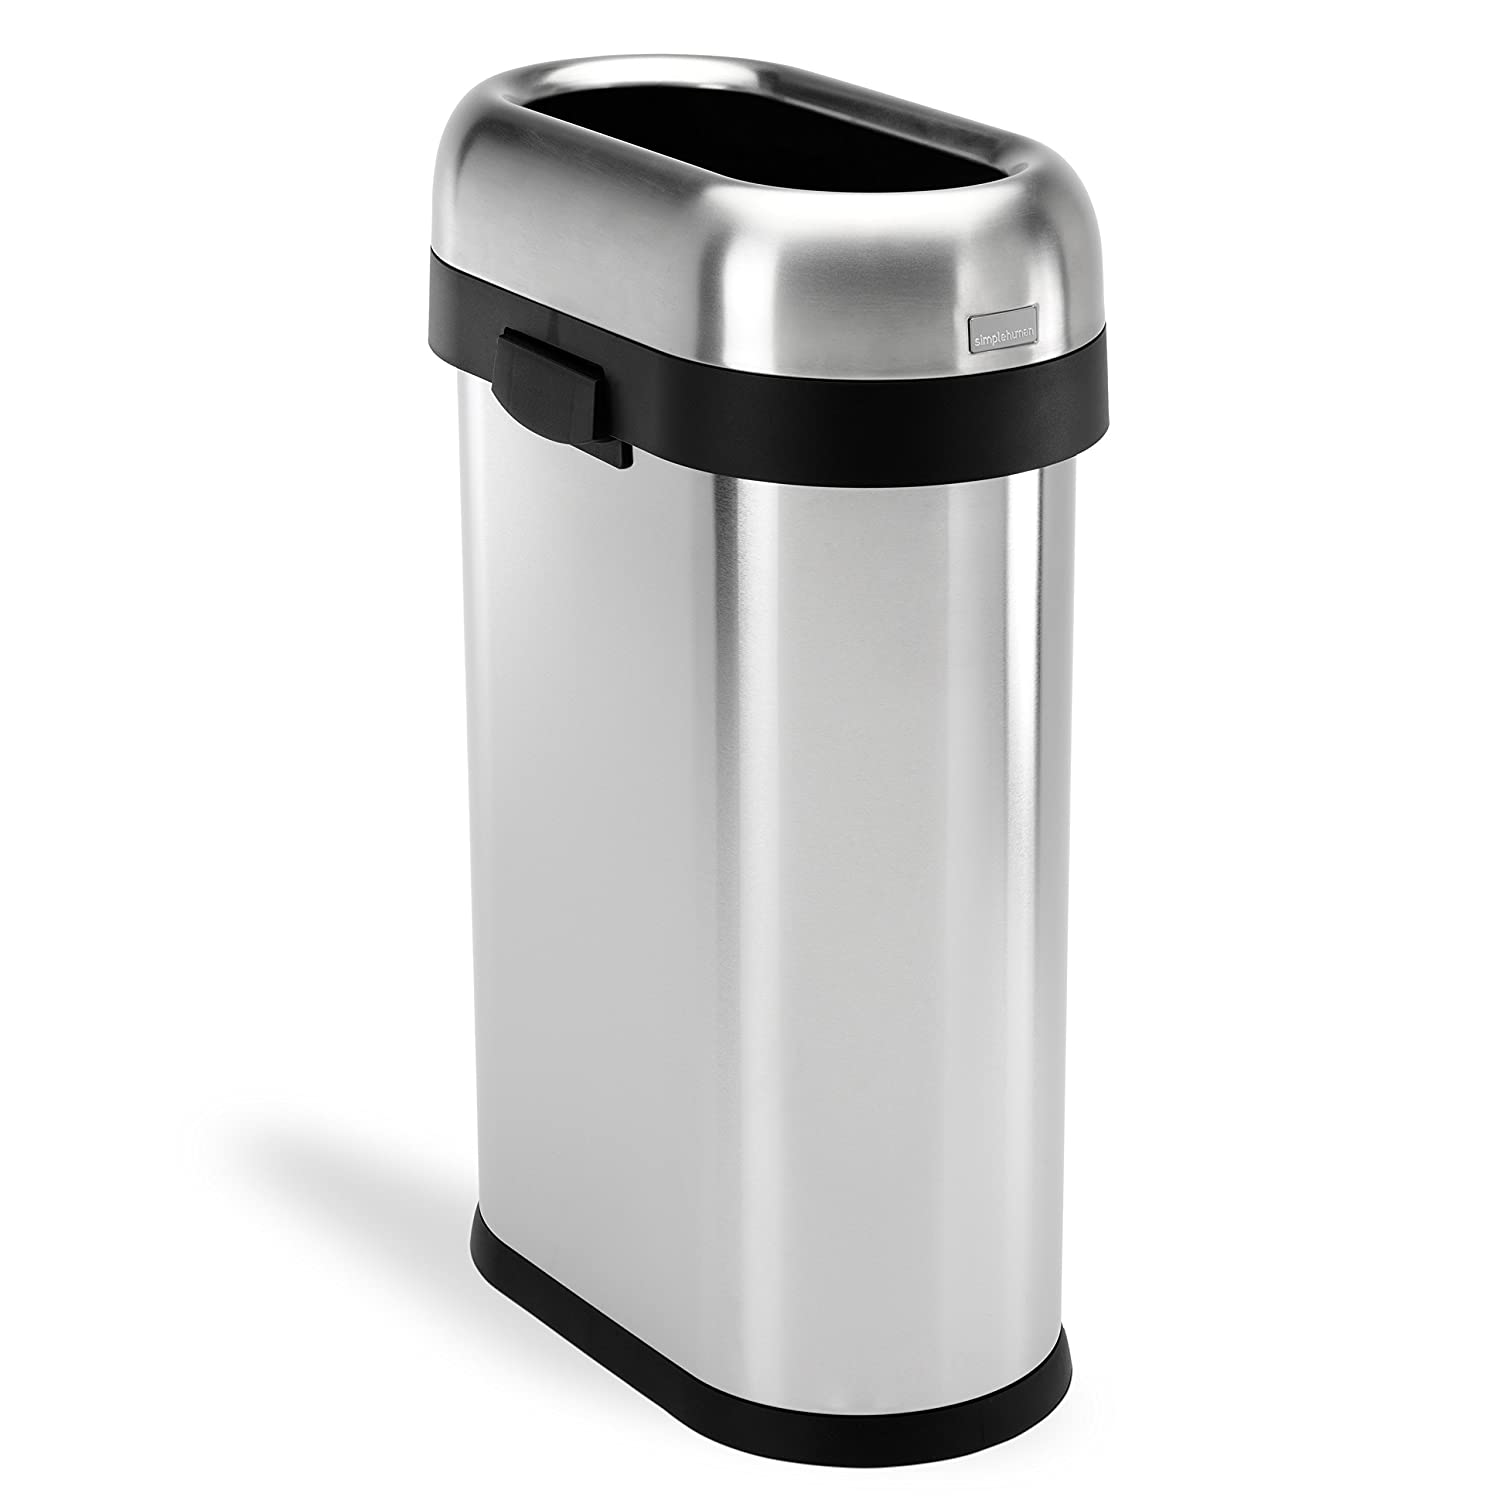 Simplehuman Slim Open Top Trash Can ...